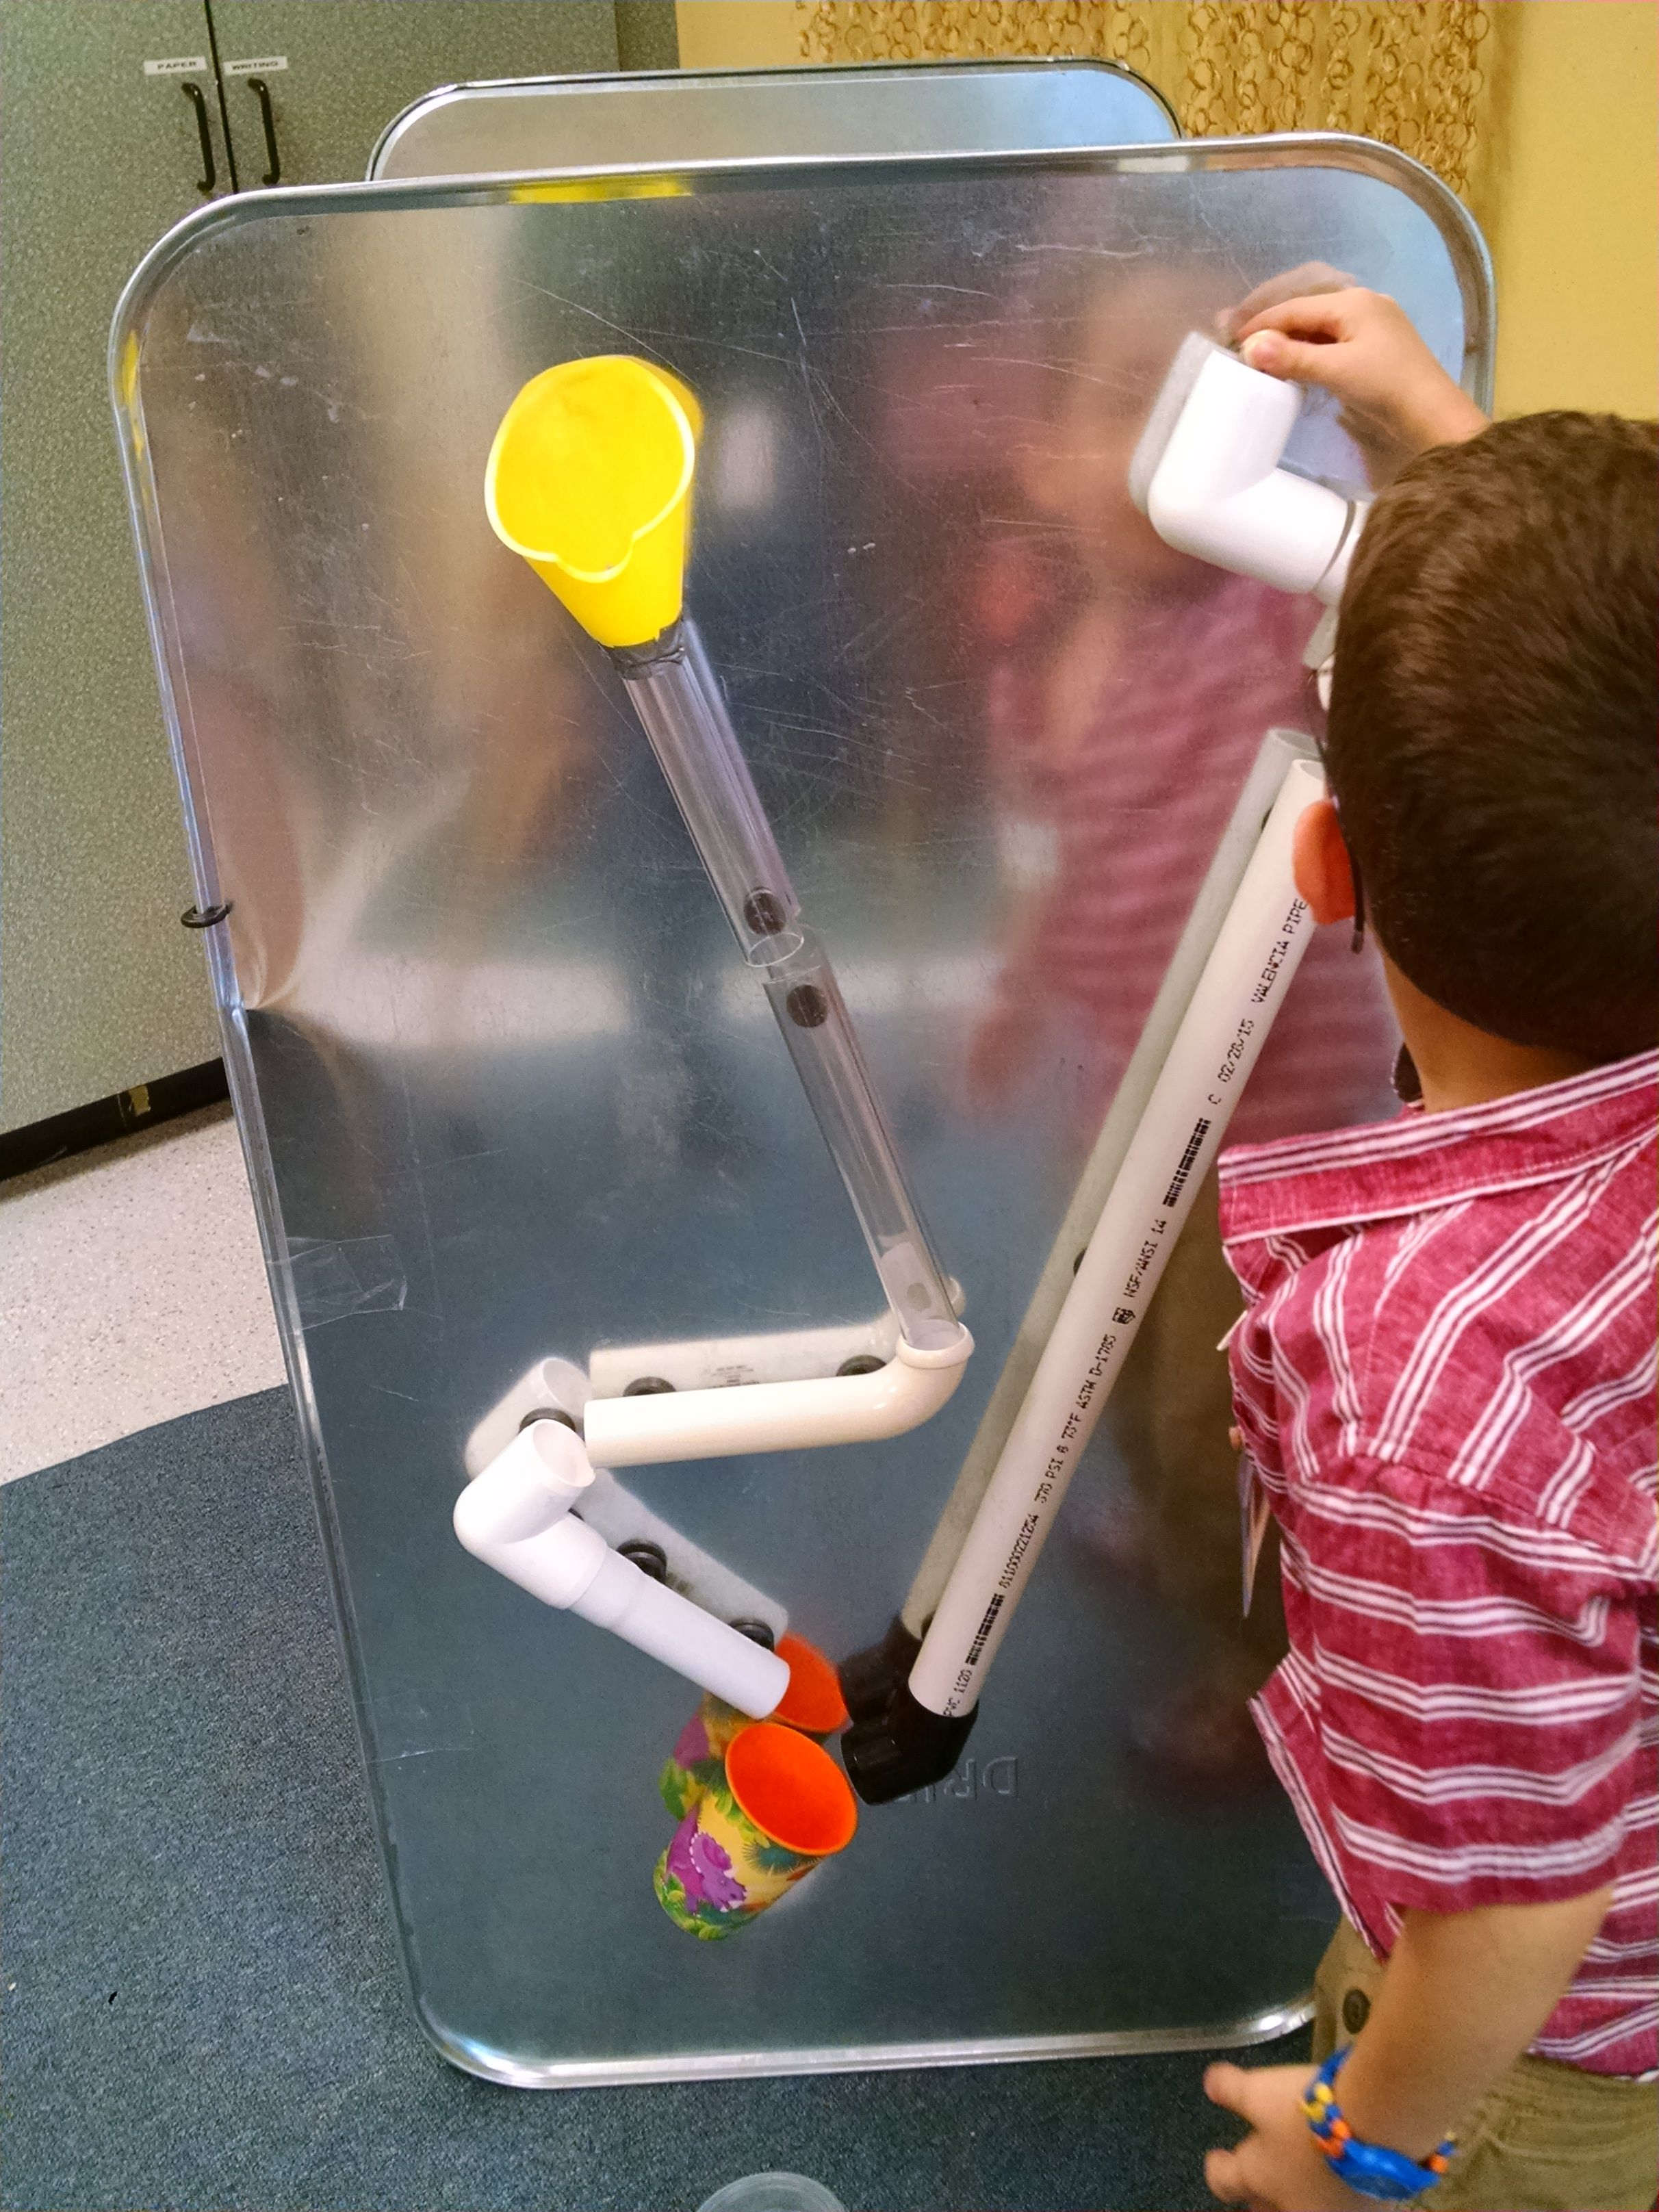 Simple Machines Theme From Inventors Of Tomorrow Series